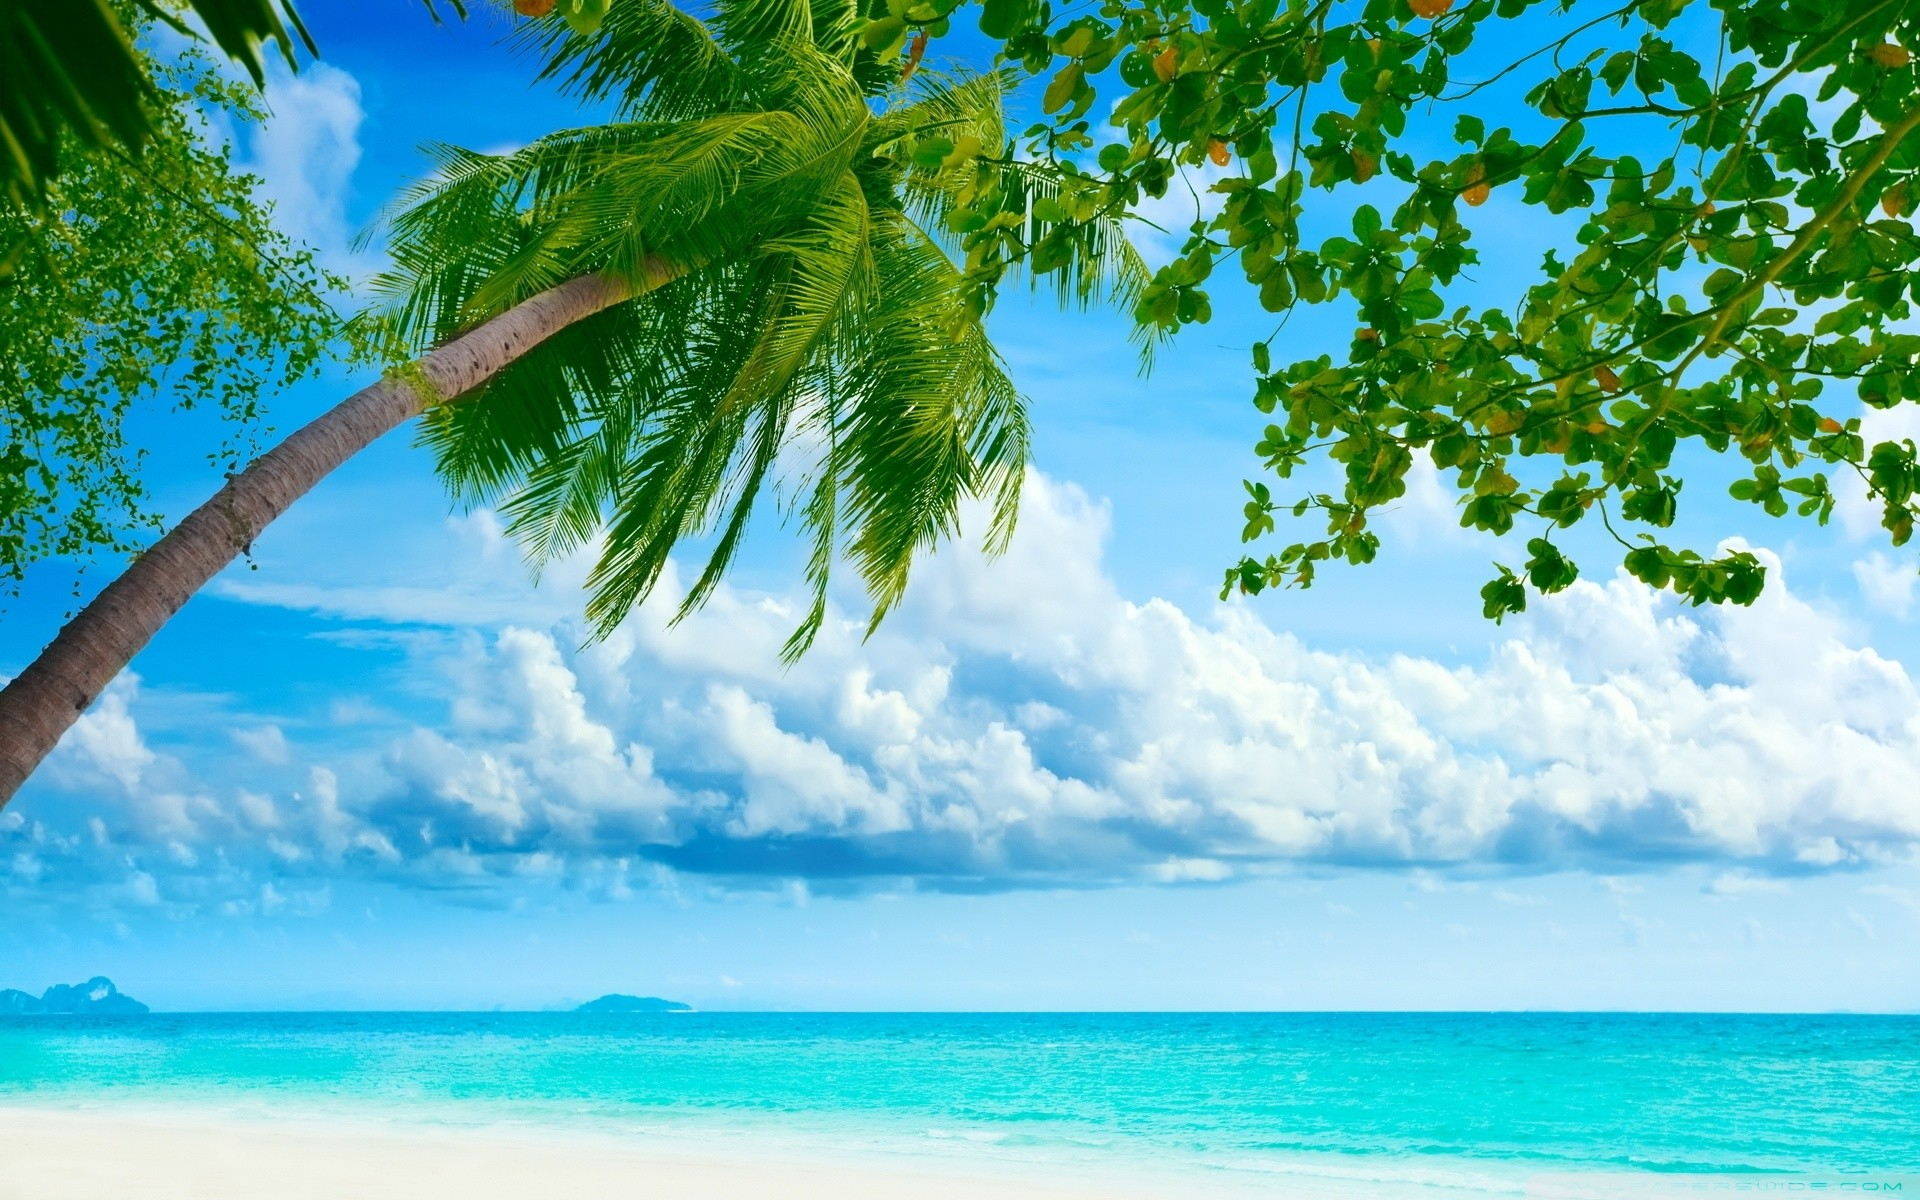 Hd Wallpaper Beach 65 Pictures